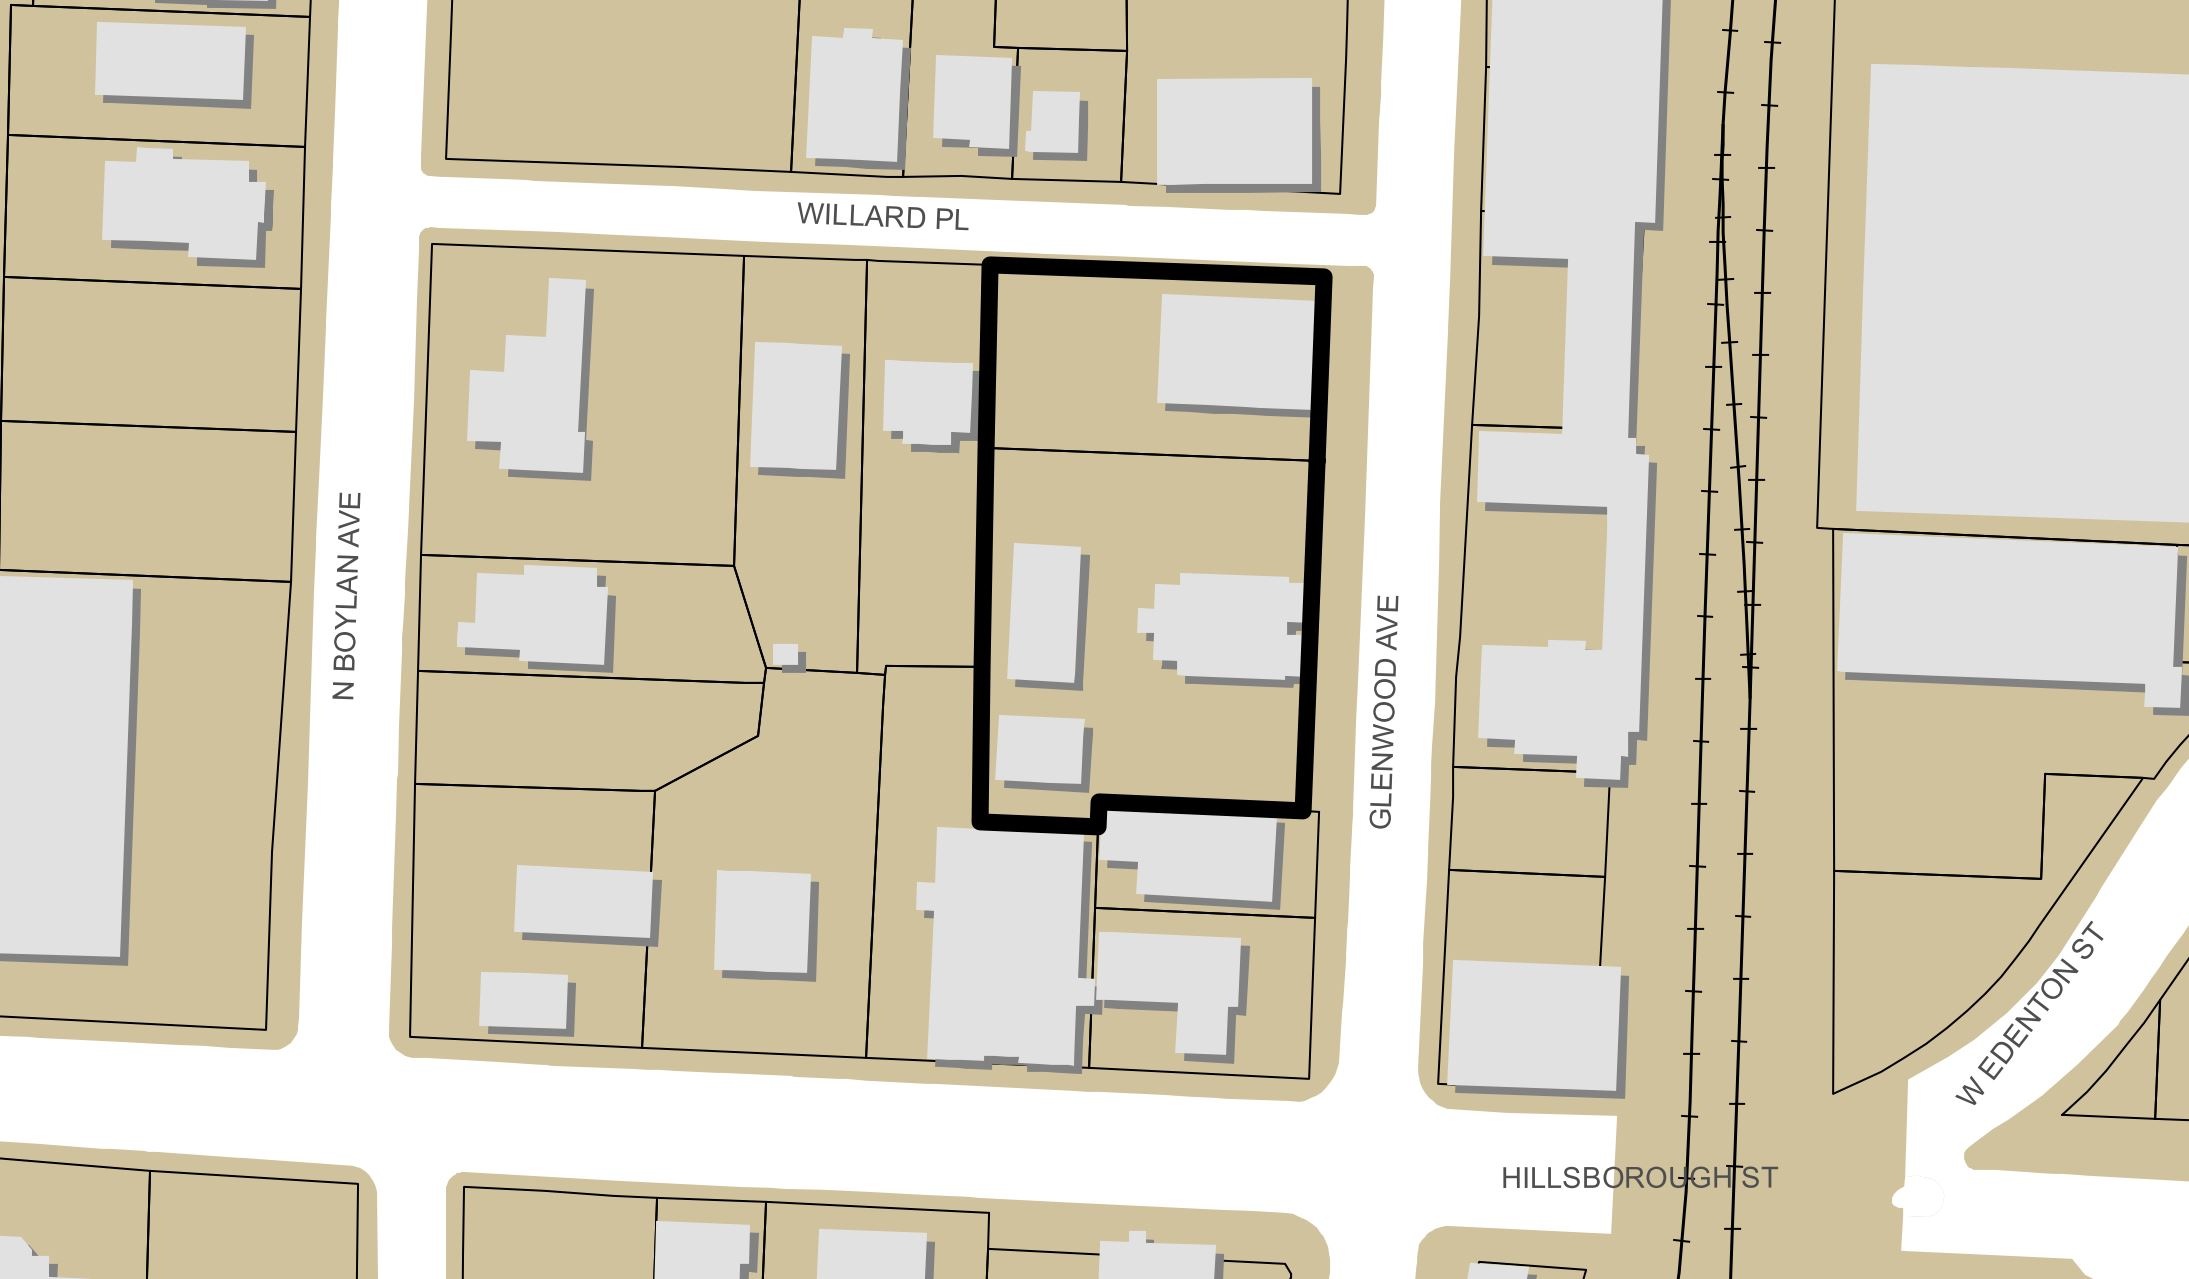 Map Of The Willard From Site Plan Submission